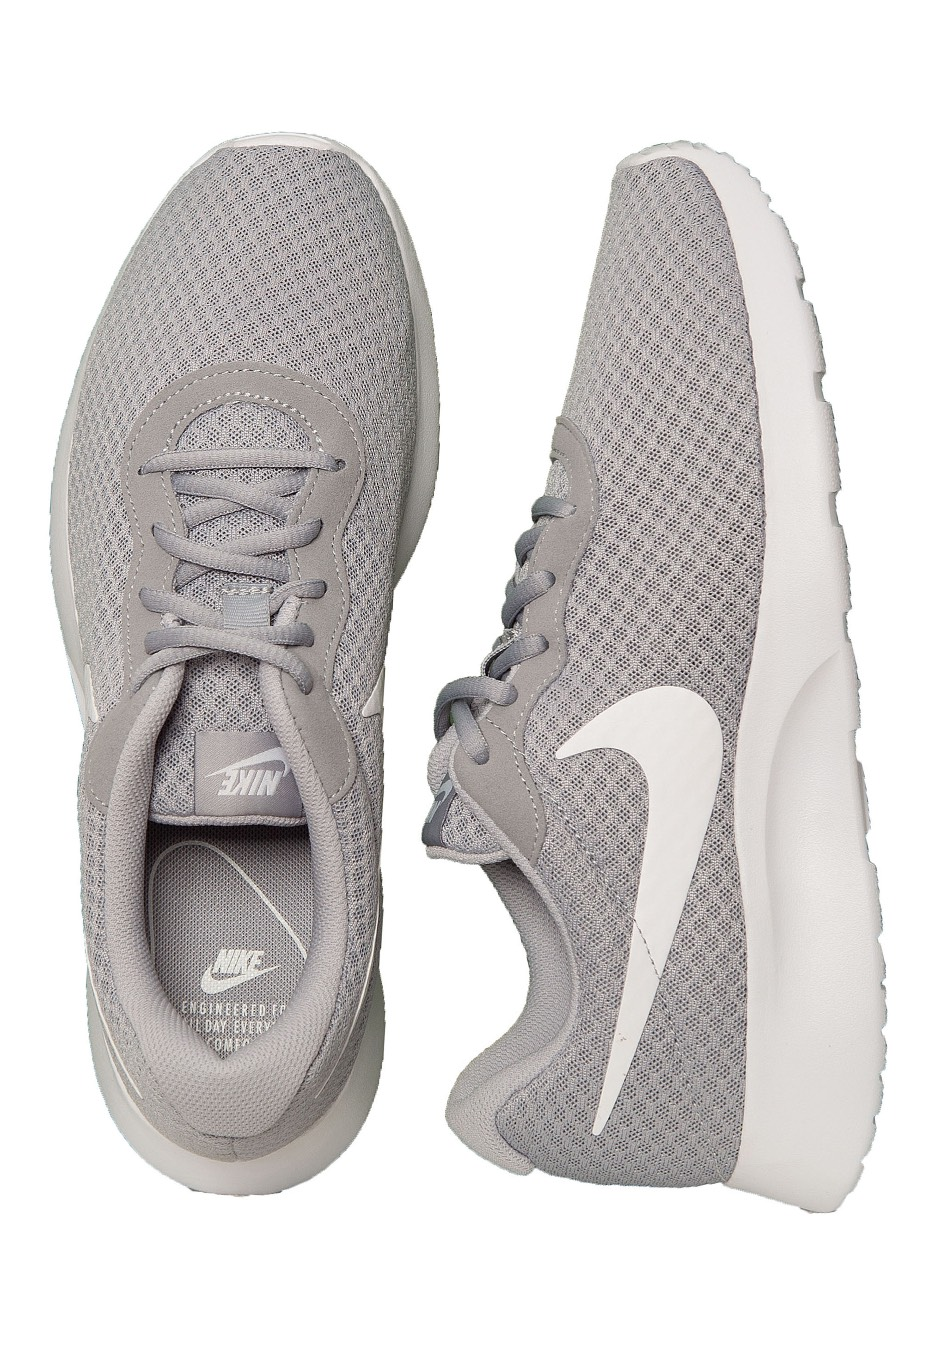 Nike - Tanjun Wolf Grey/White - Shoes